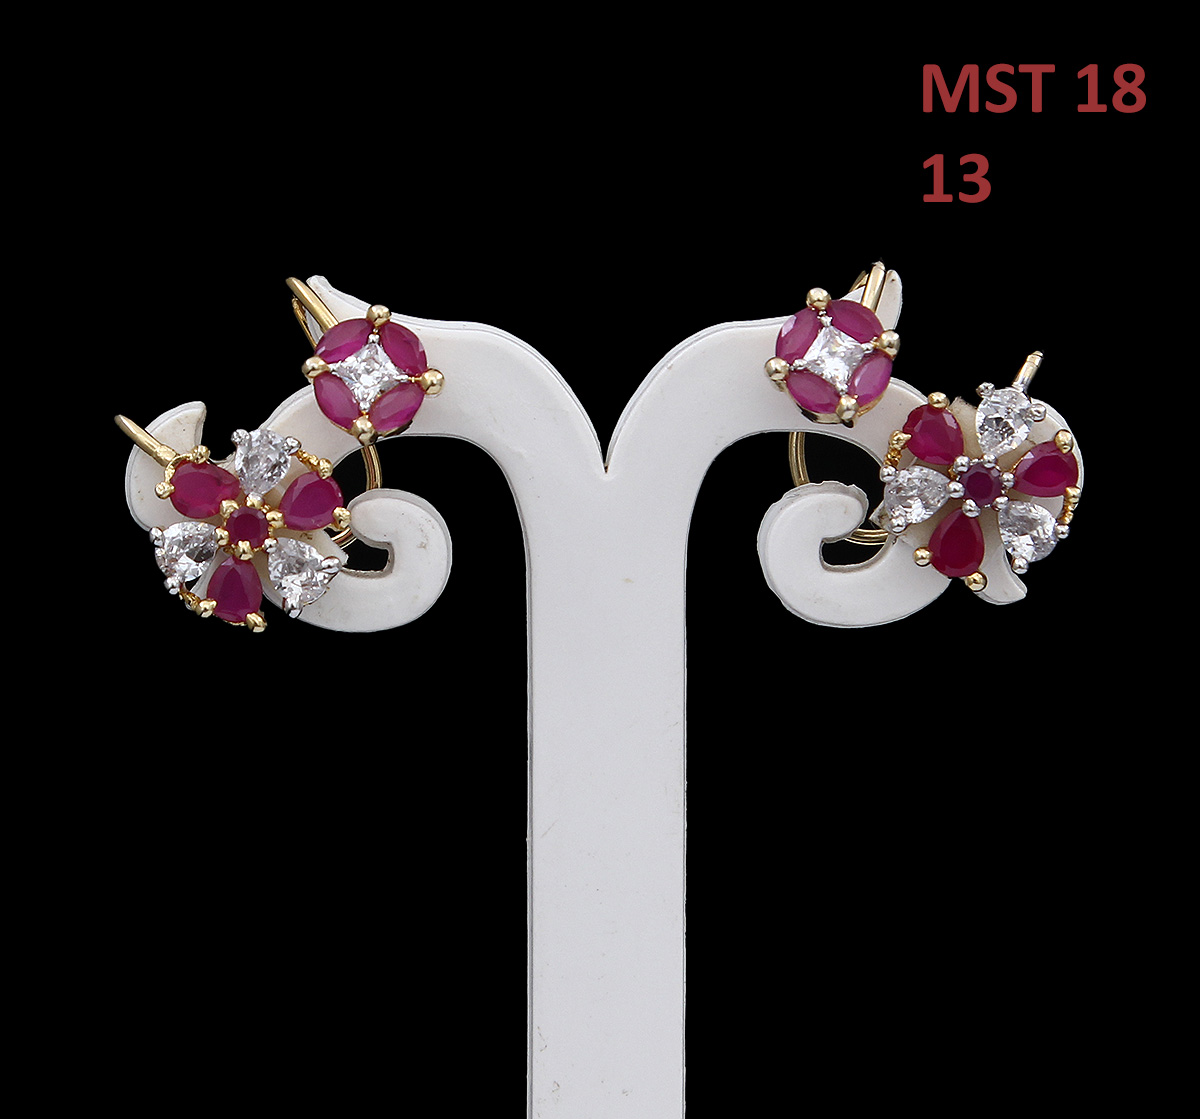 55Carat | 55Carat Designer Ear Cuffs Pink Ruby CZ 14K Gold Plated Floral Shaped Gorgeous Looking Earrings Latest Trending Accessory for Girls and Women